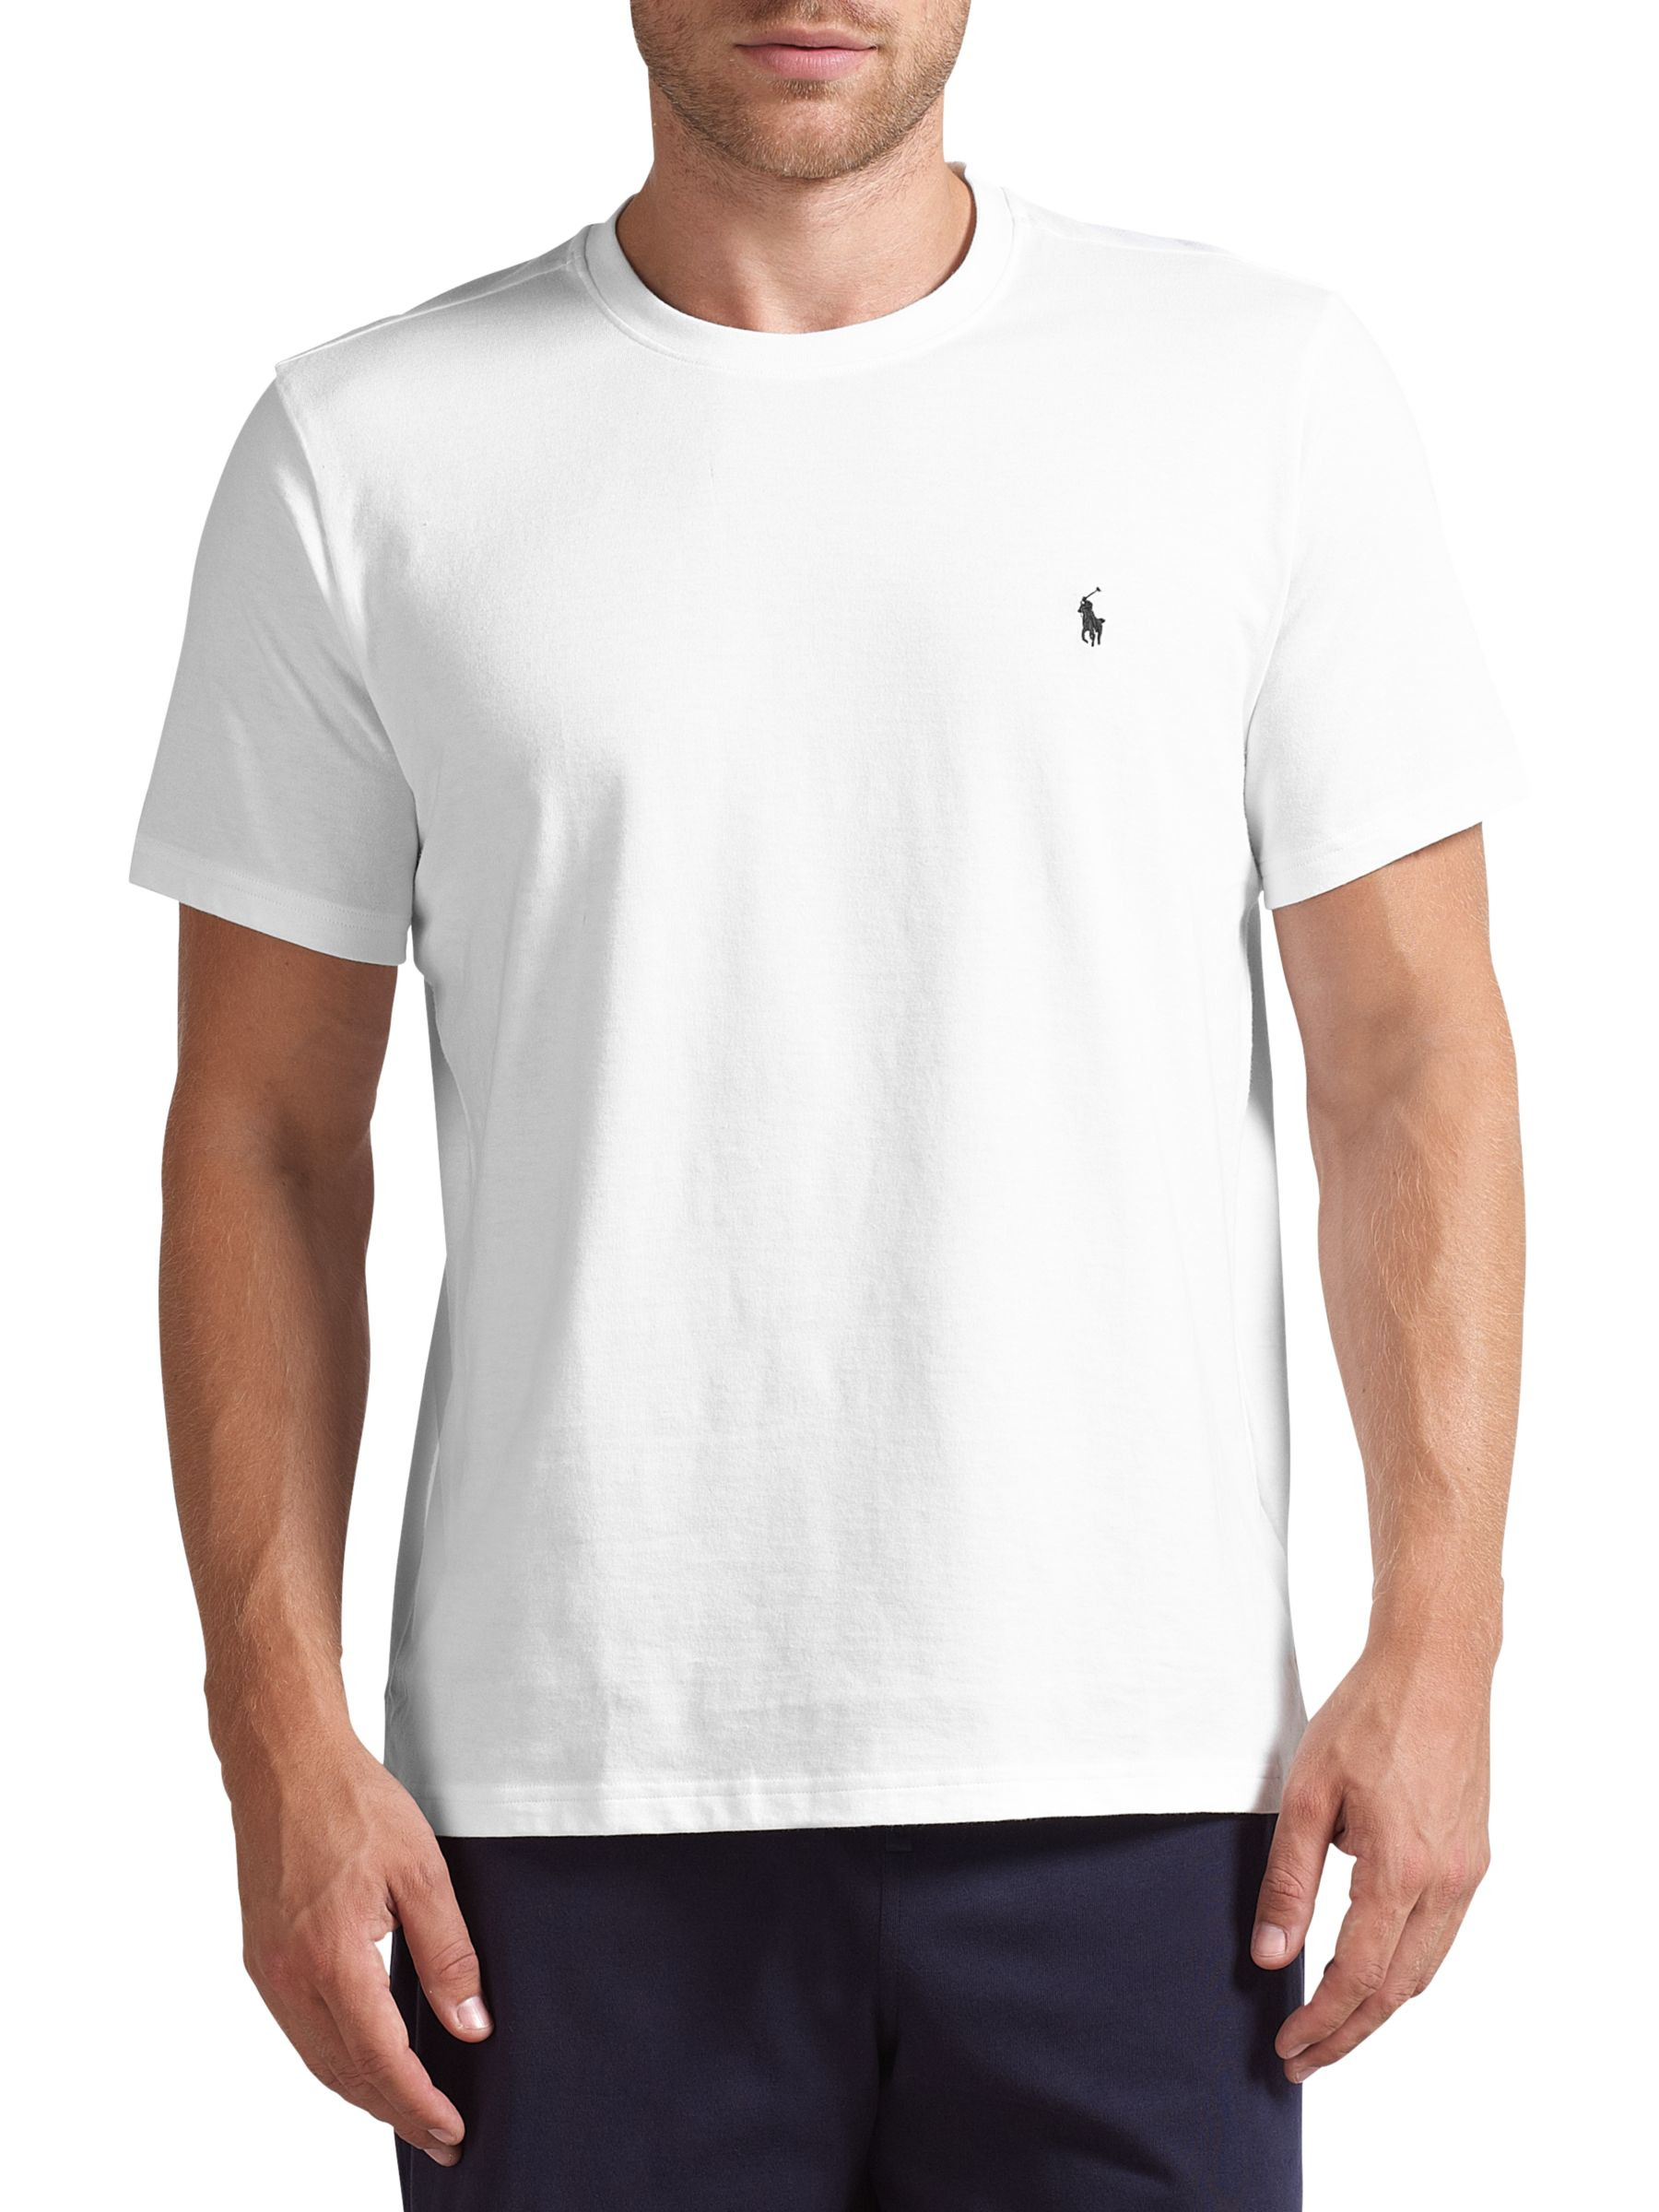 Polo ralph lauren crew neck lounge t shirt white octer for Crew neck white t shirt